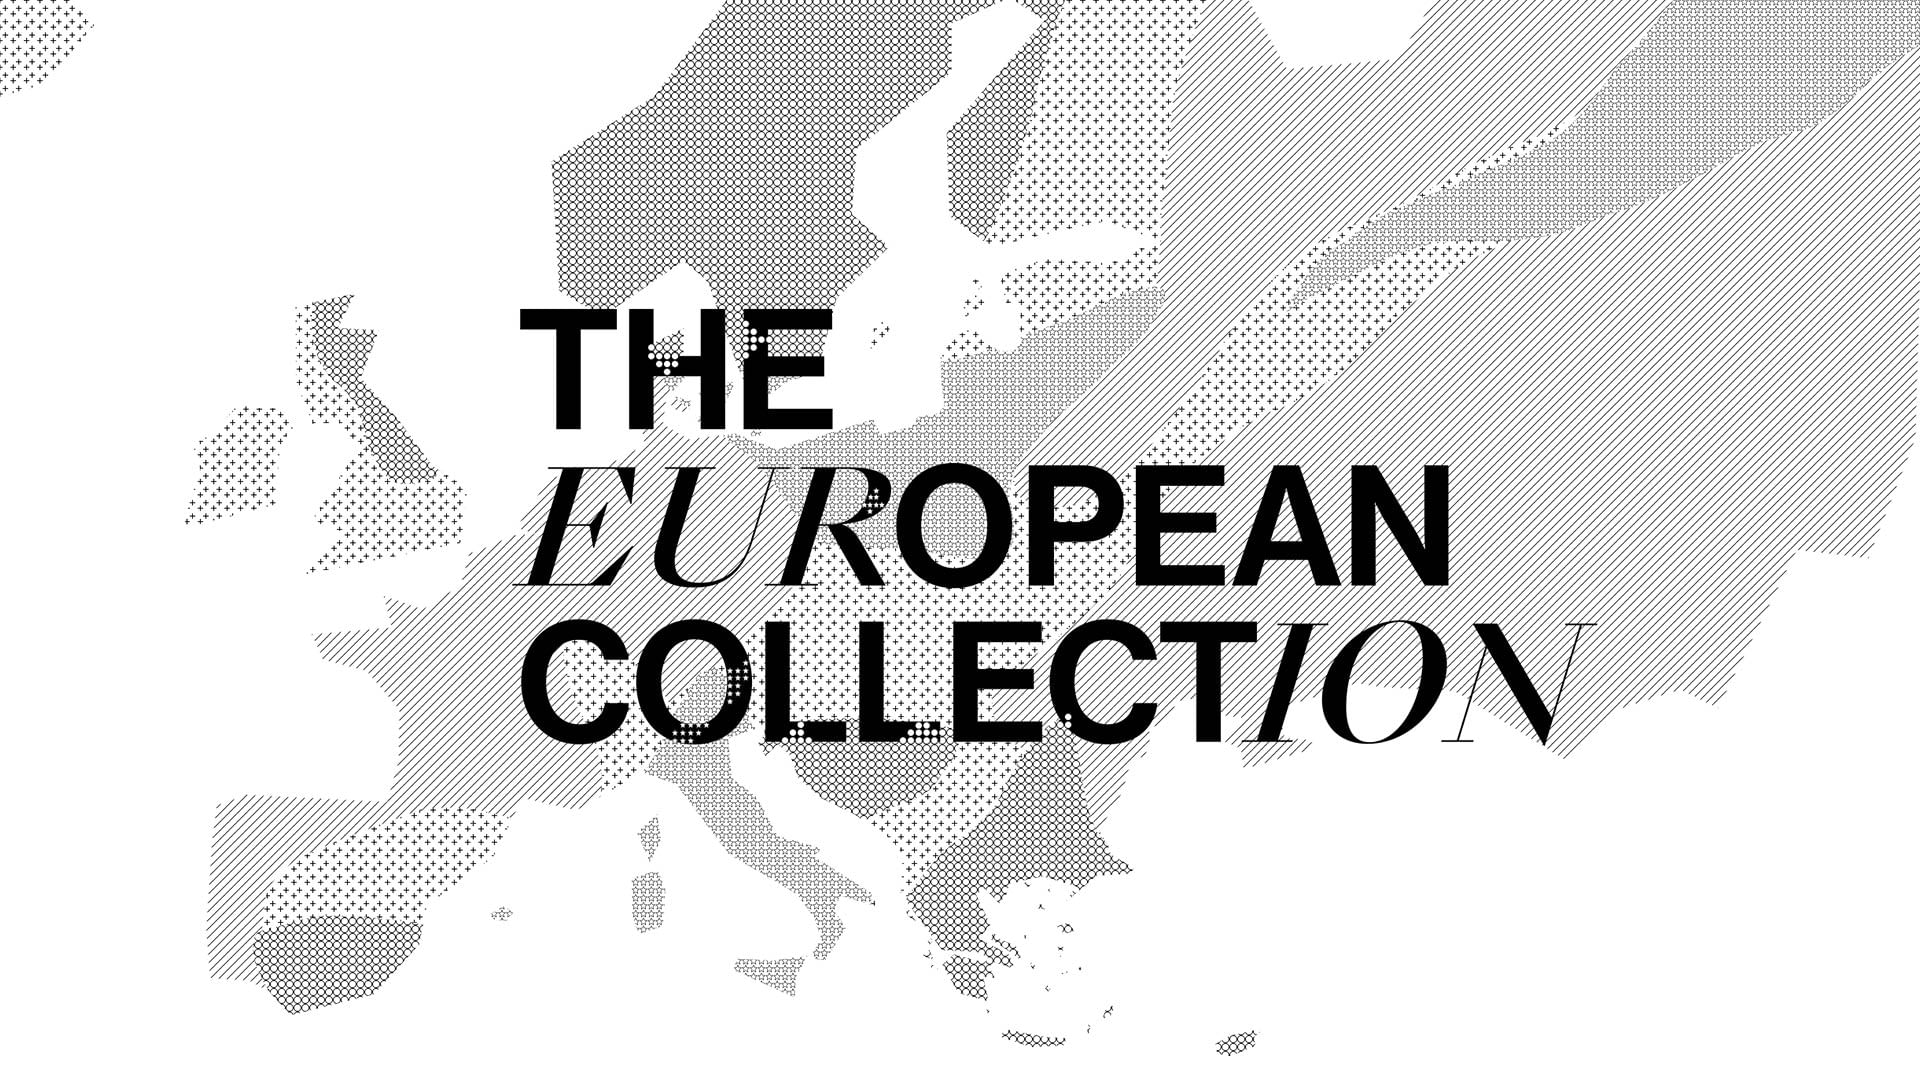 Europe: One Continent, Many Stories